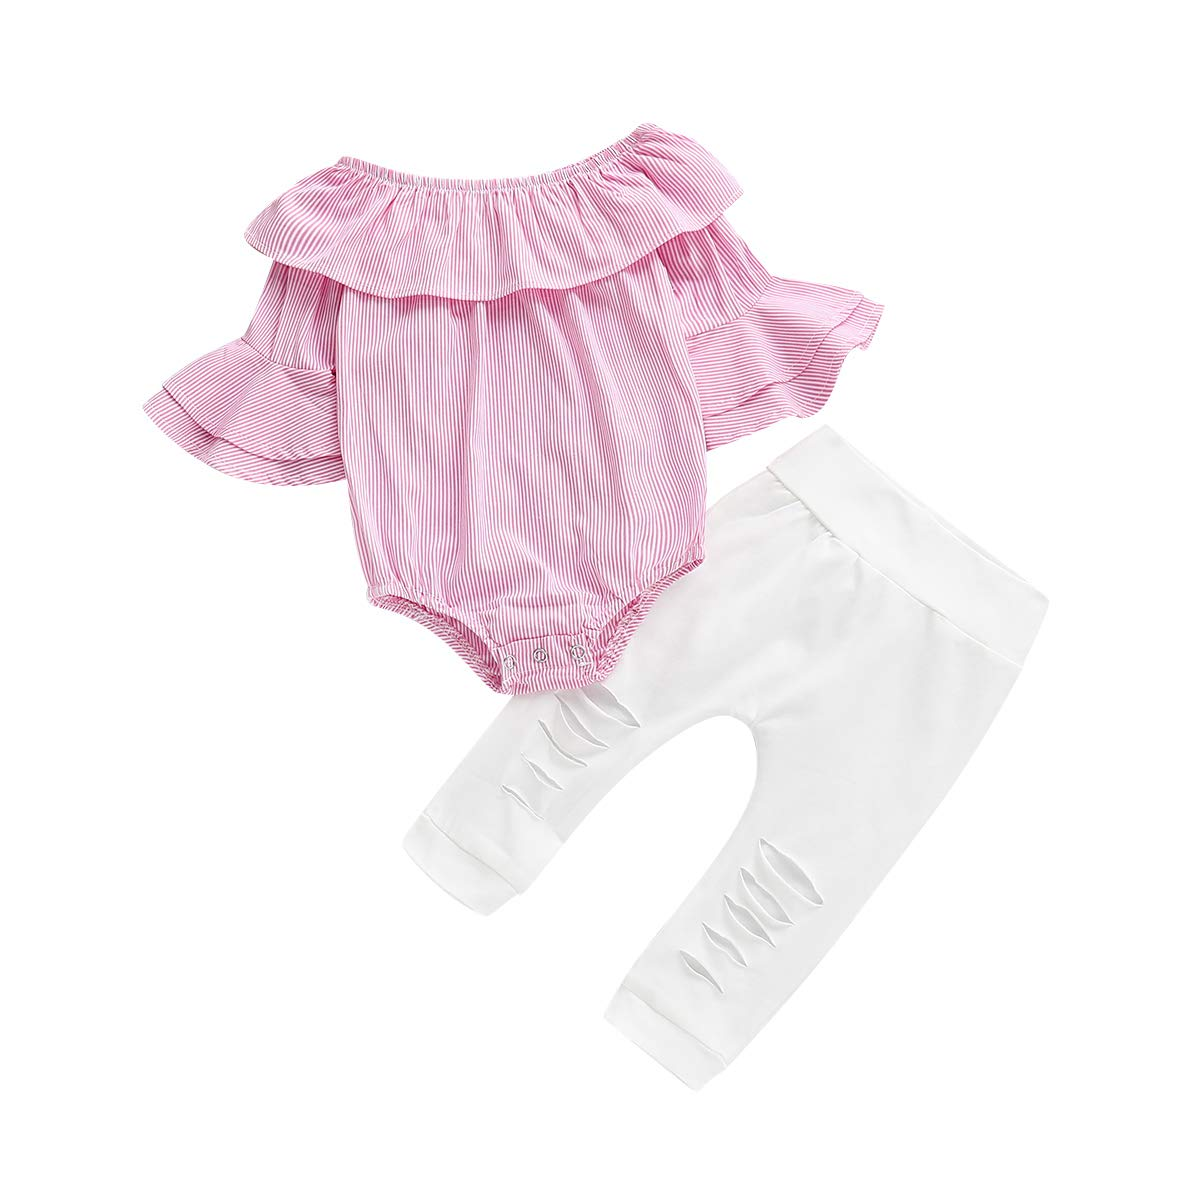 084c968c67e4b Baby Girl Summer Outfits 3Pcs Floral Romper Top Pink Ruffles Short Sleeve  Bodysuit Flower Pants Bow Headband Clothes Set